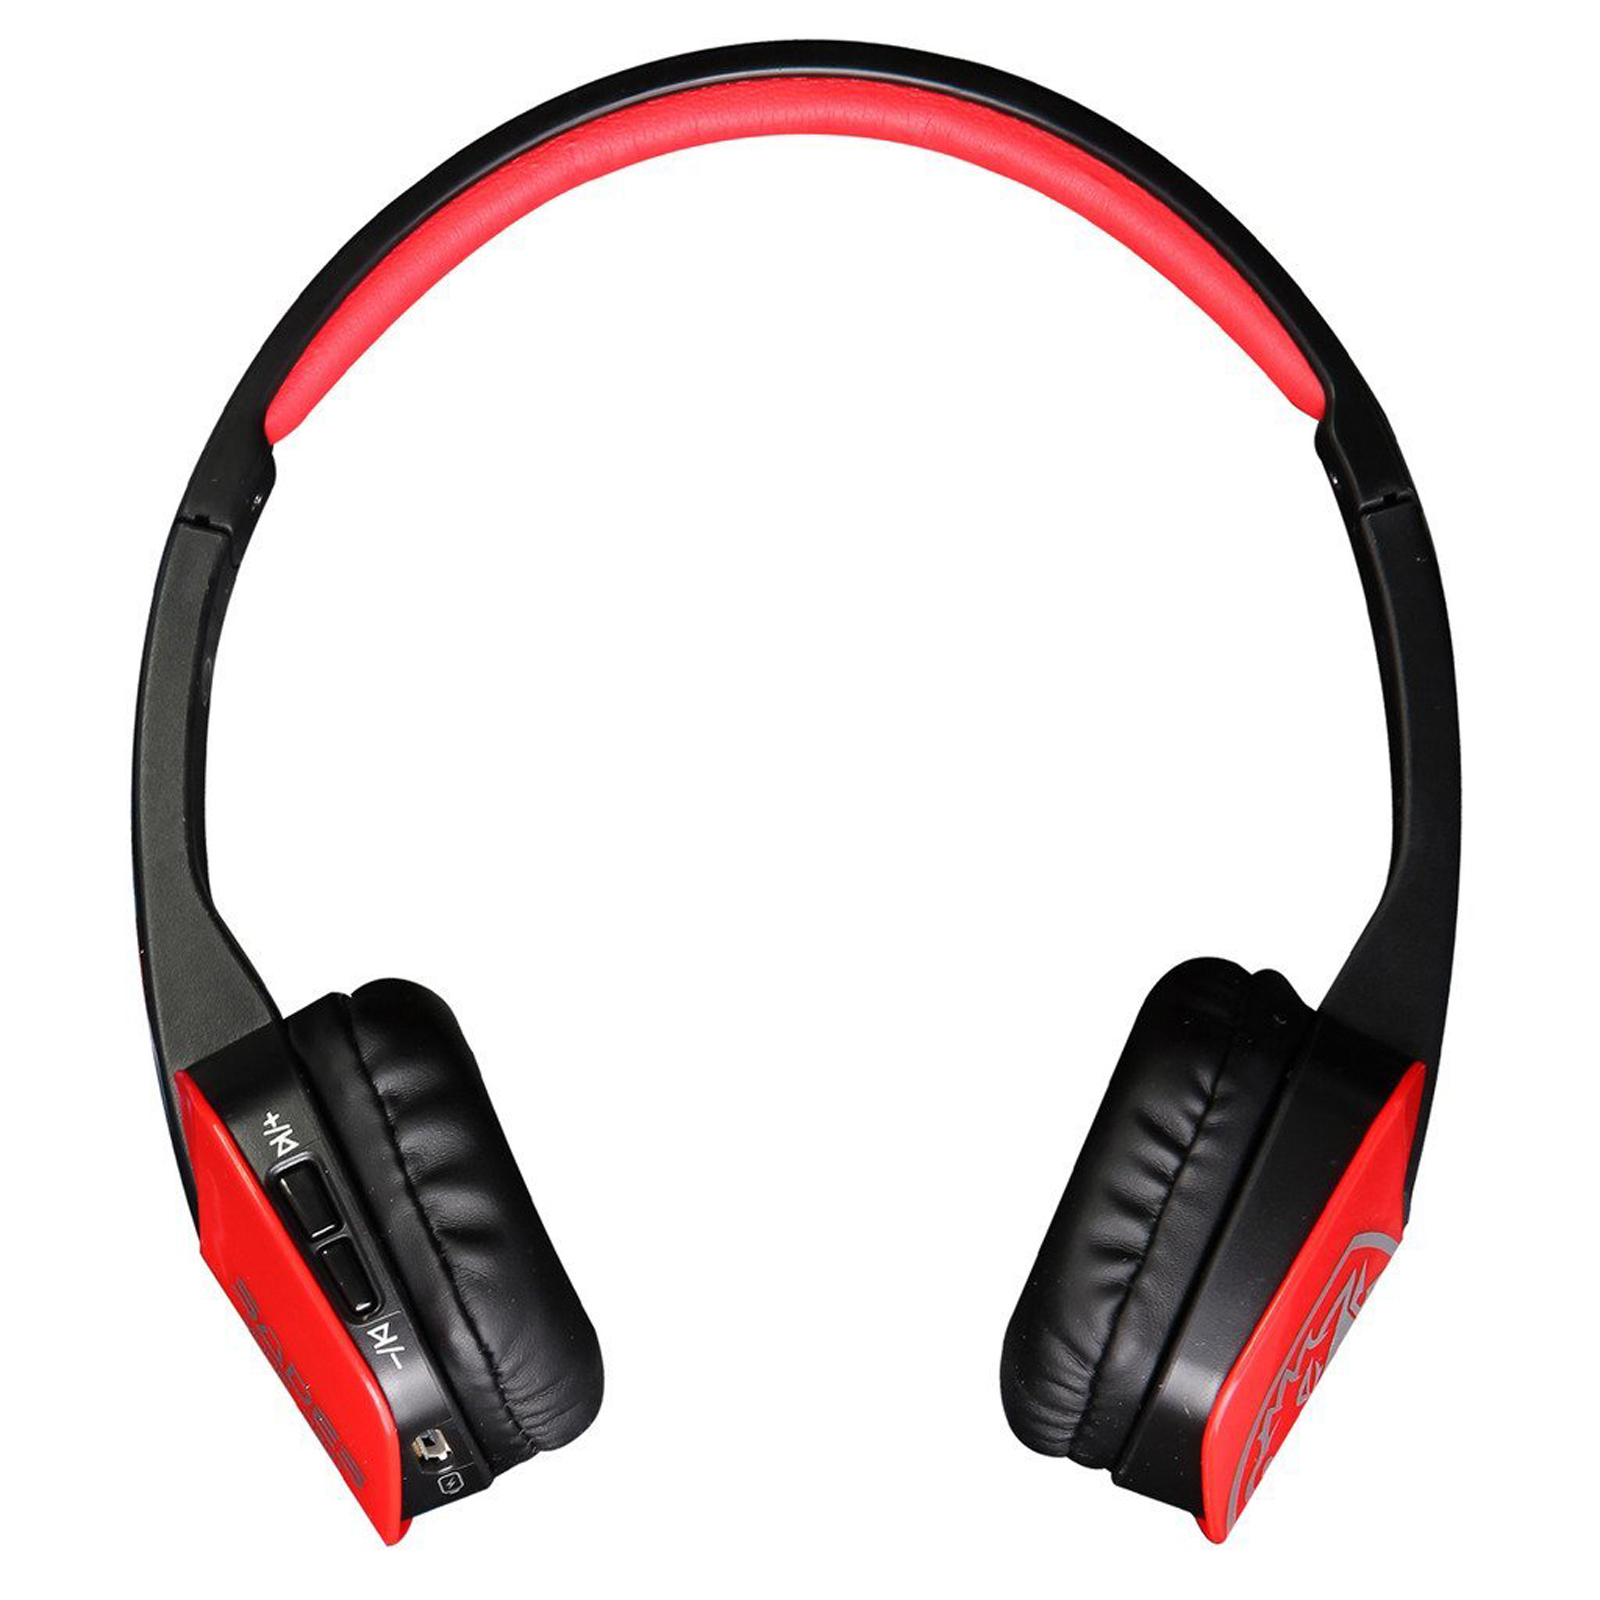 Sades Wireless Bluetooth Gaming Headset Stereo Headphone With Mic For PC Phone